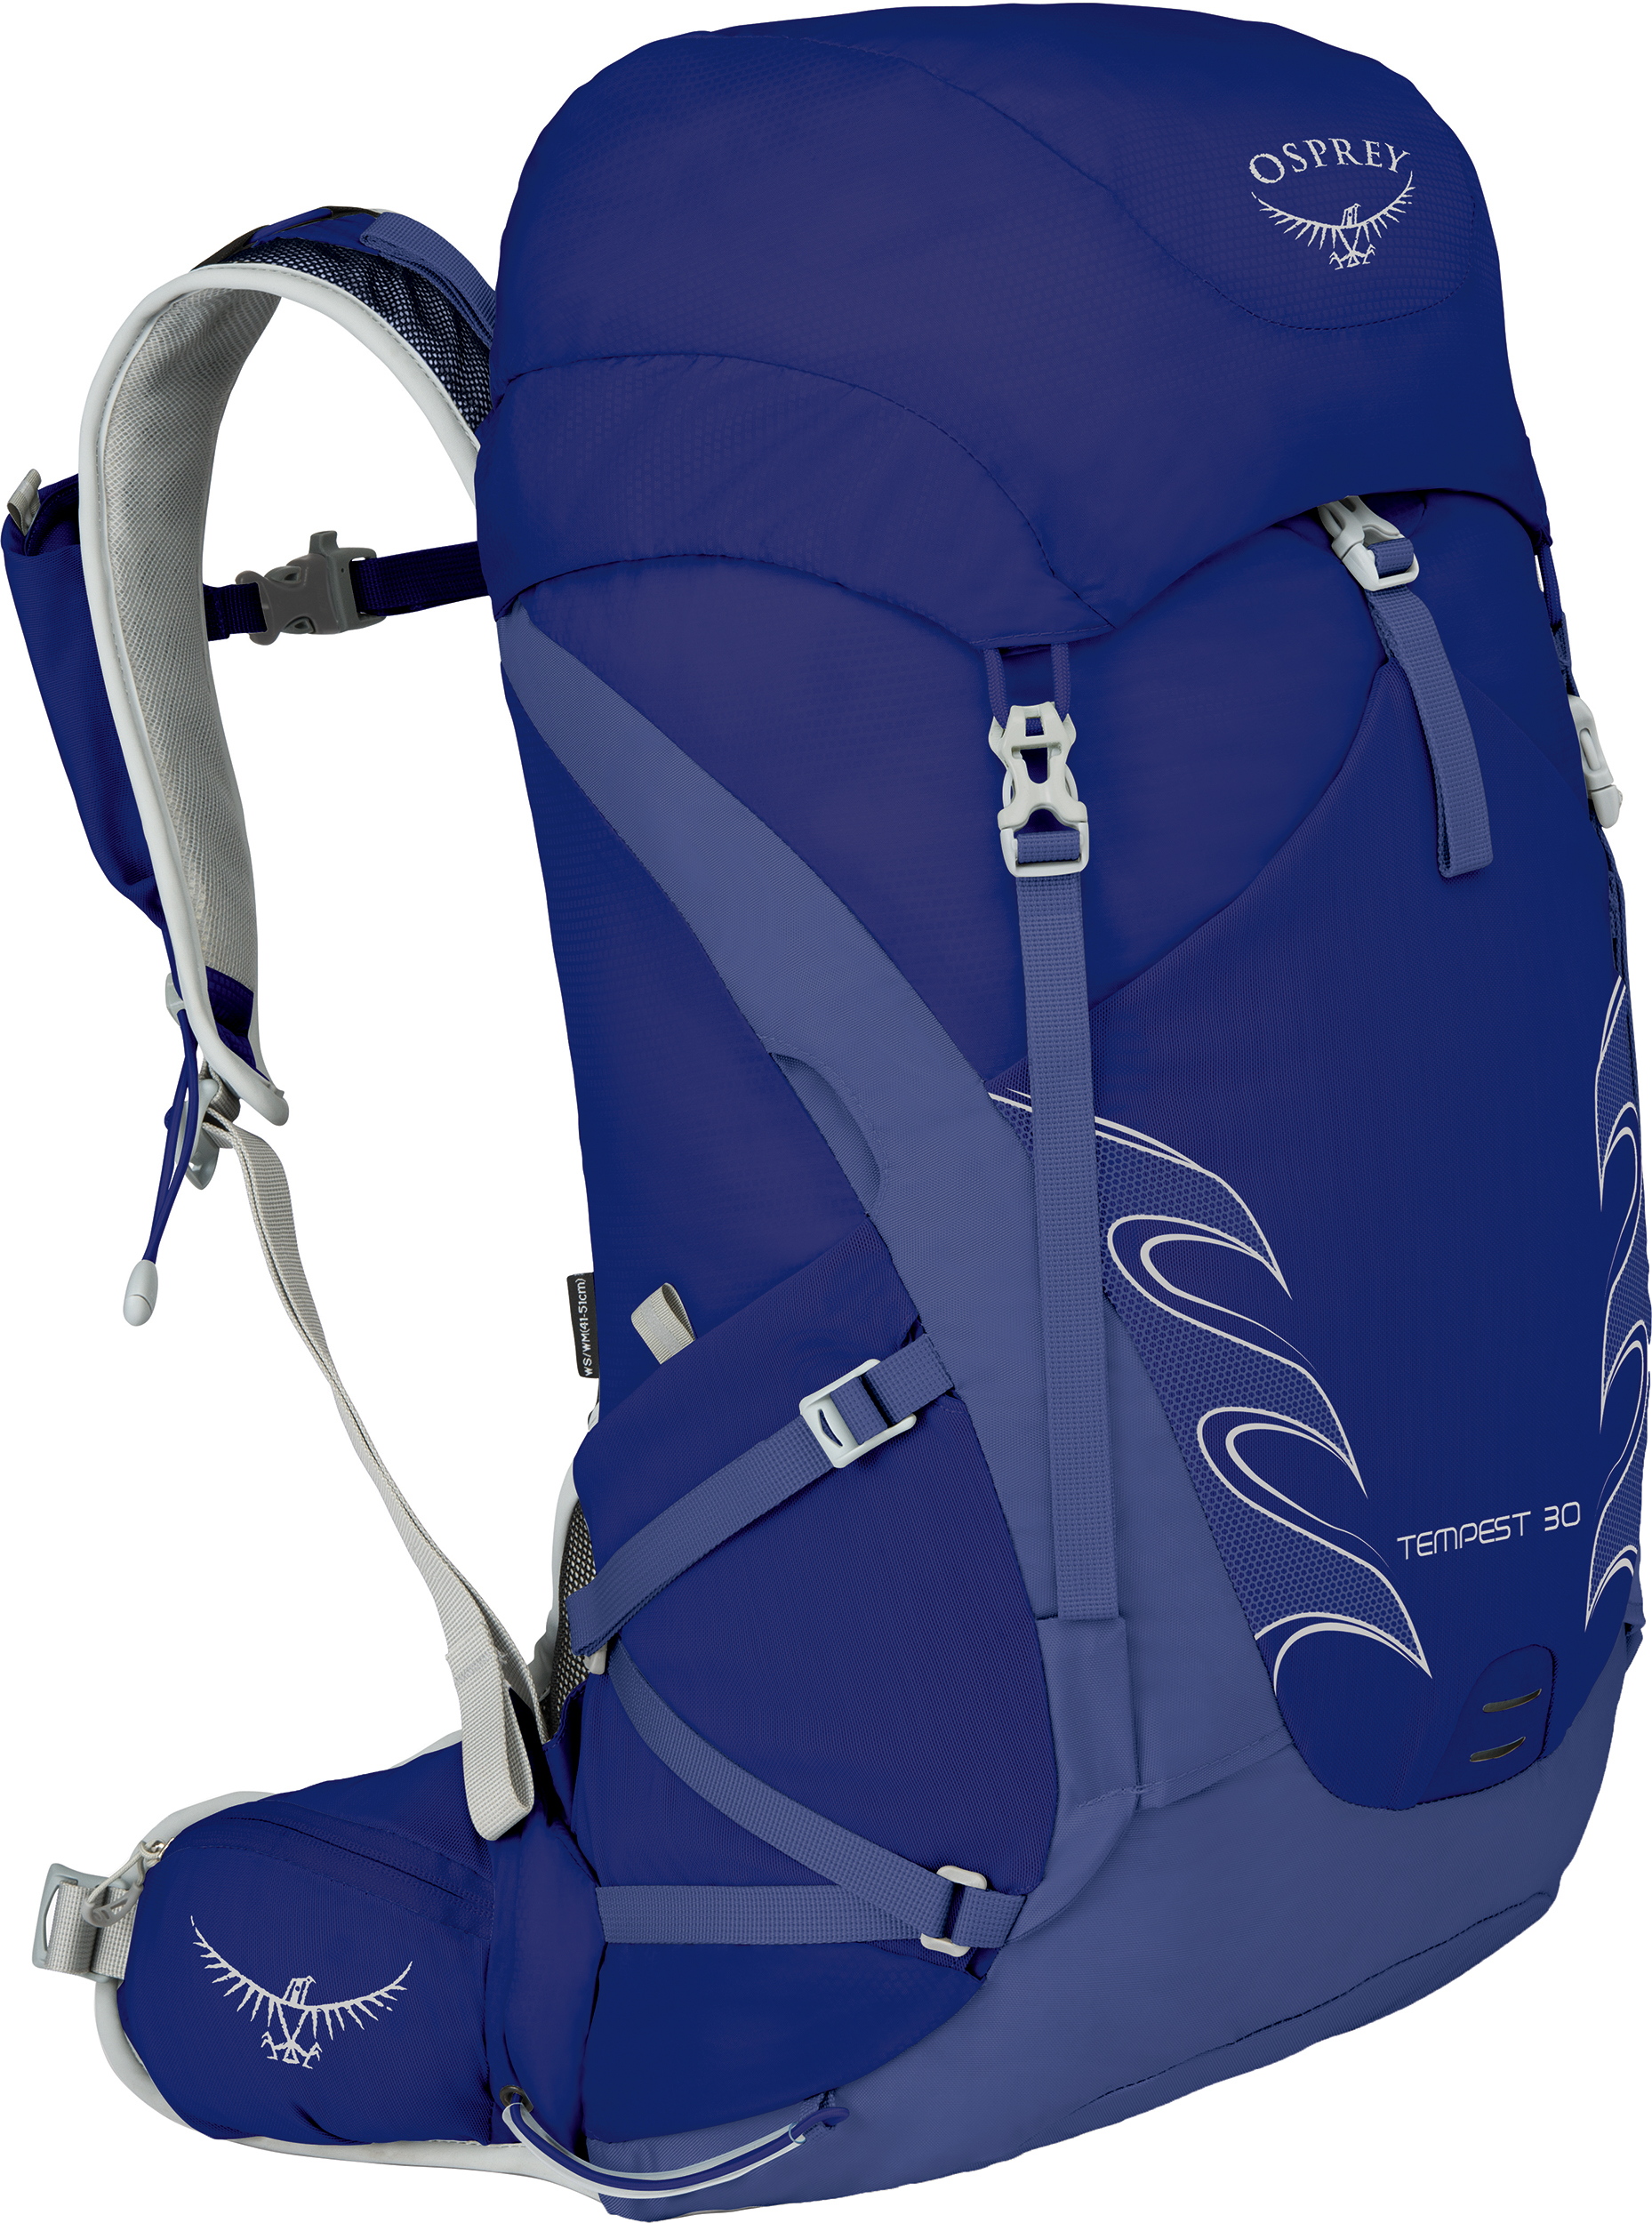 Osprey Tempest 30 Backpack - Women s a280c8406a5eb